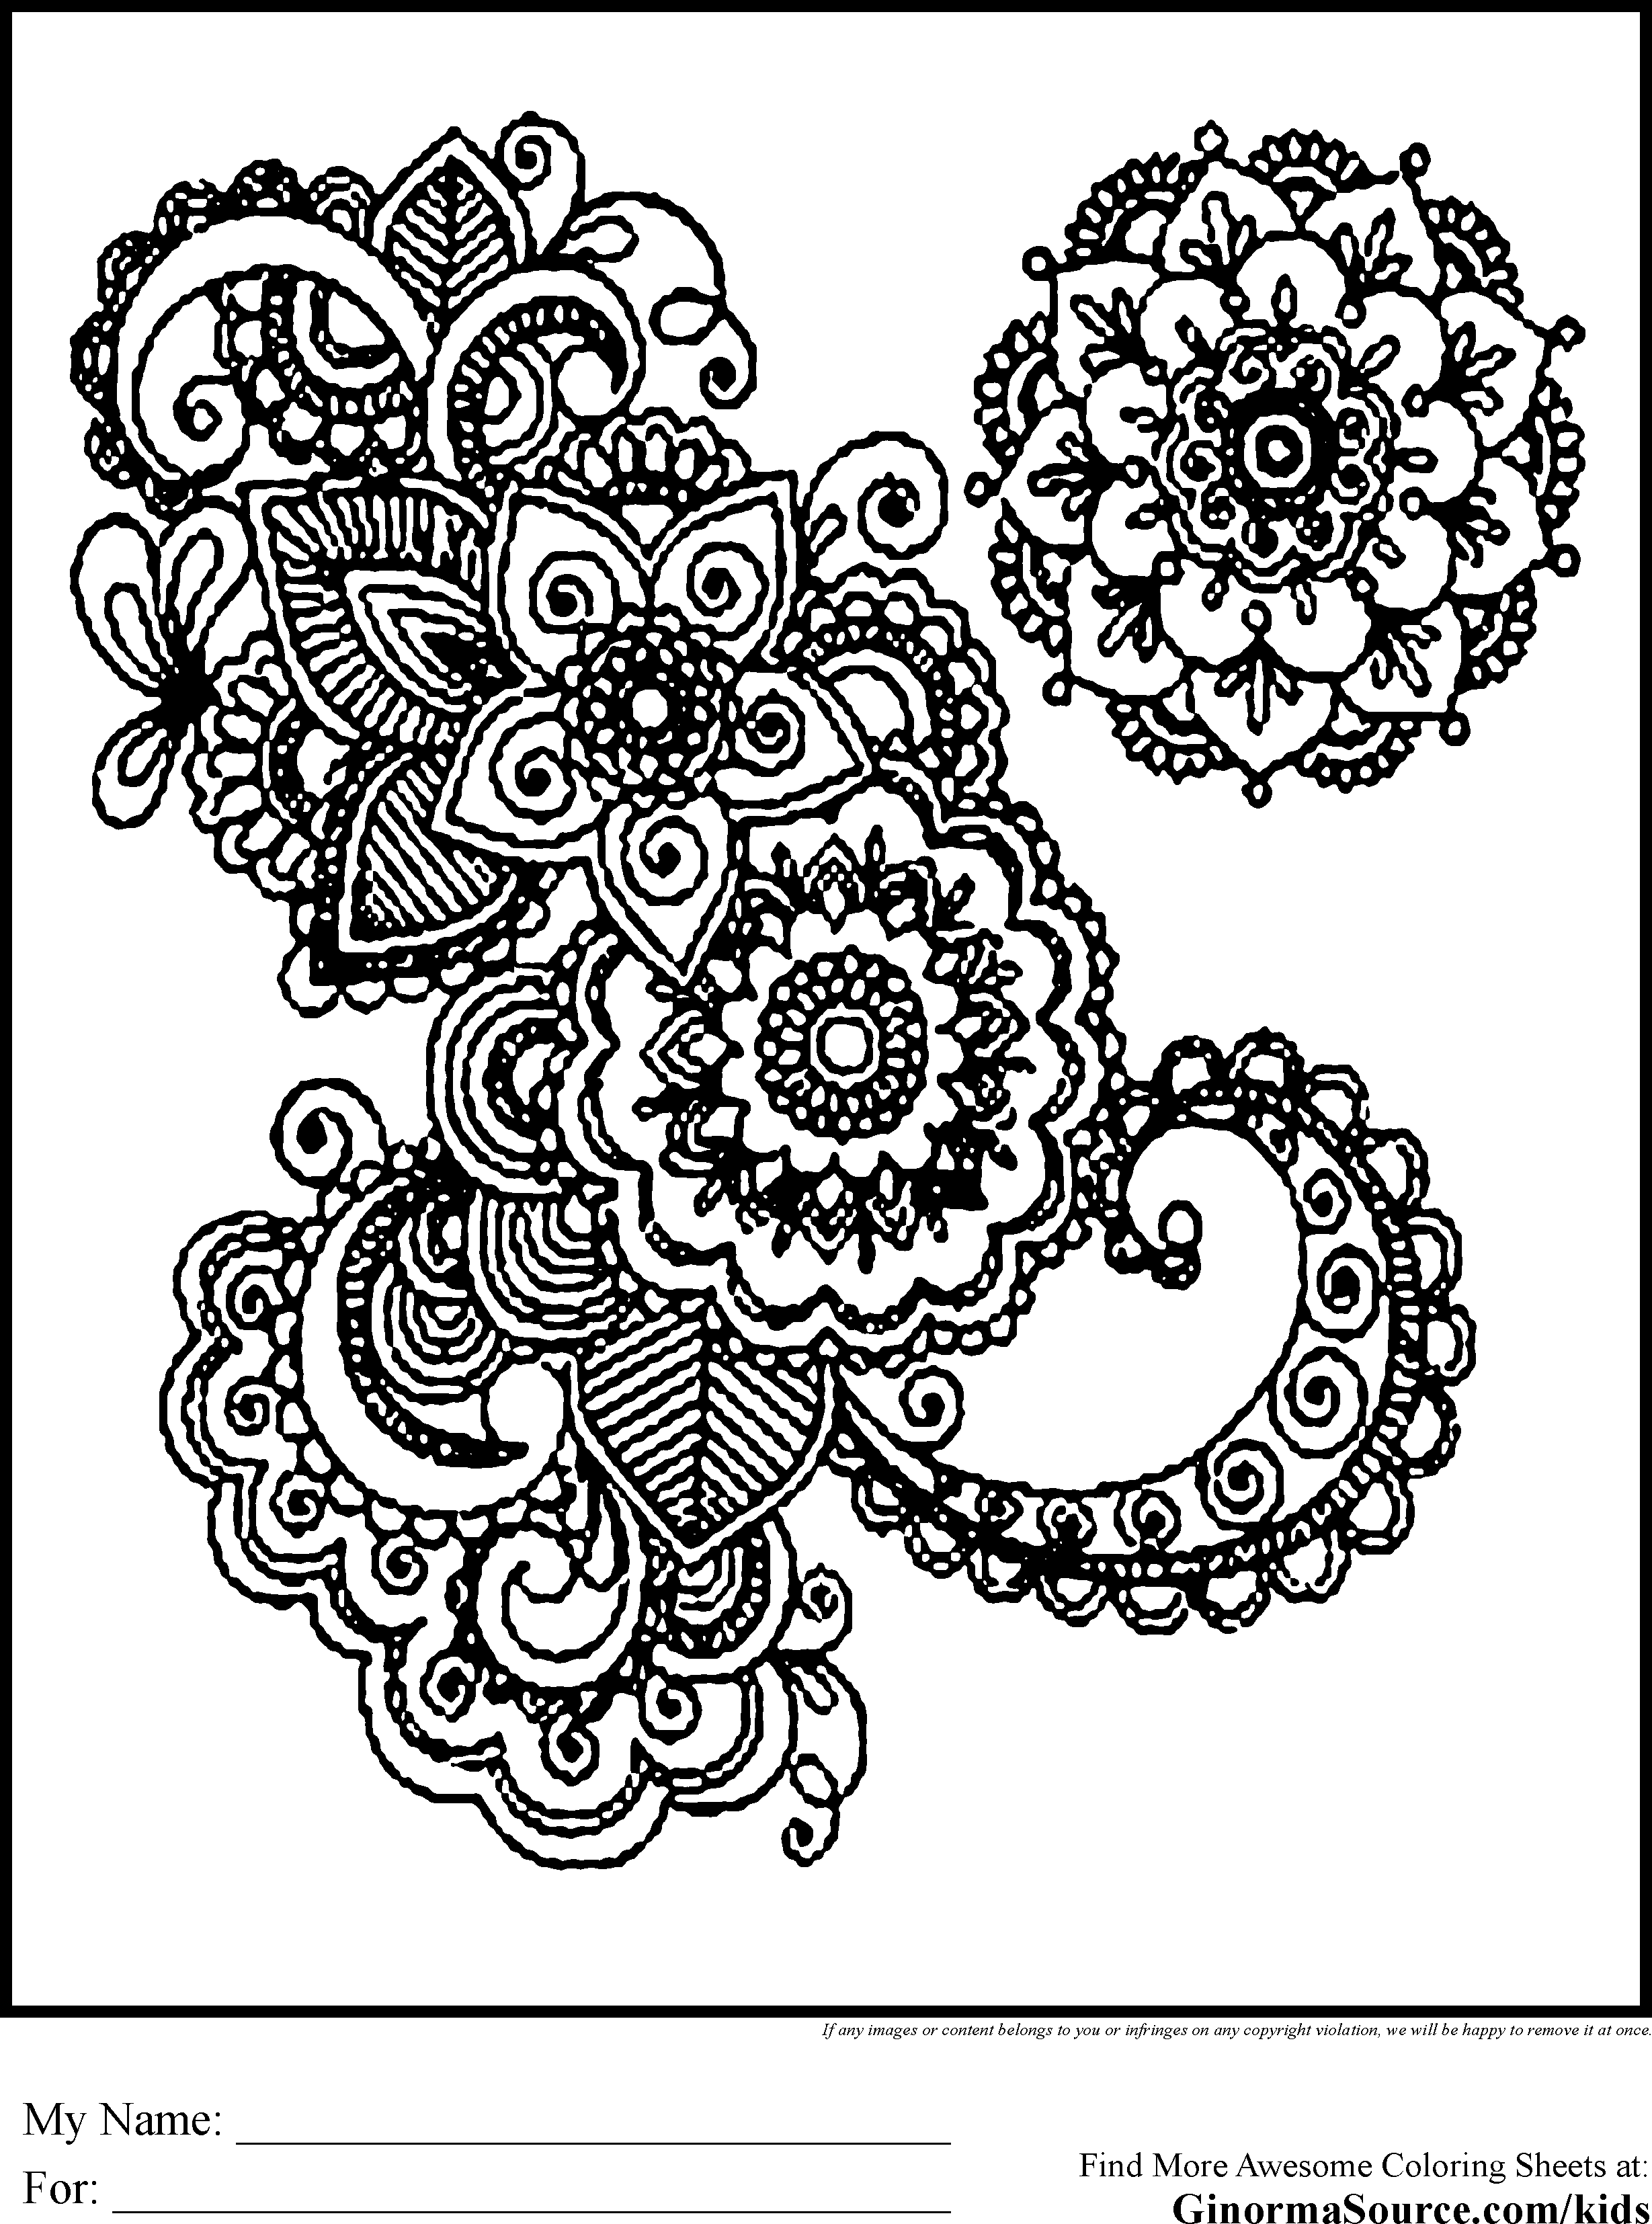 Kids coloring book pages free - Free Colouring Pages For Adults Printable Advanced Coloring Pages